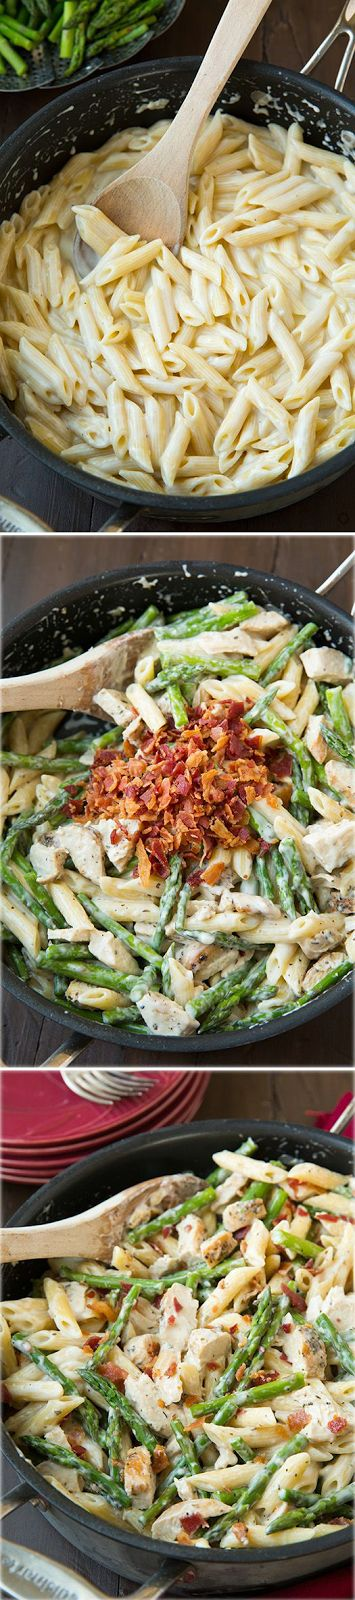 Mouth Watering Foods: Creamy Chicken and Asparagus Pasta with Bacon - this pasta is AMAZING! Like a lighter alfredo pasta with bonus of herbed chicken, fresh asparagus and salty bacon. So good!